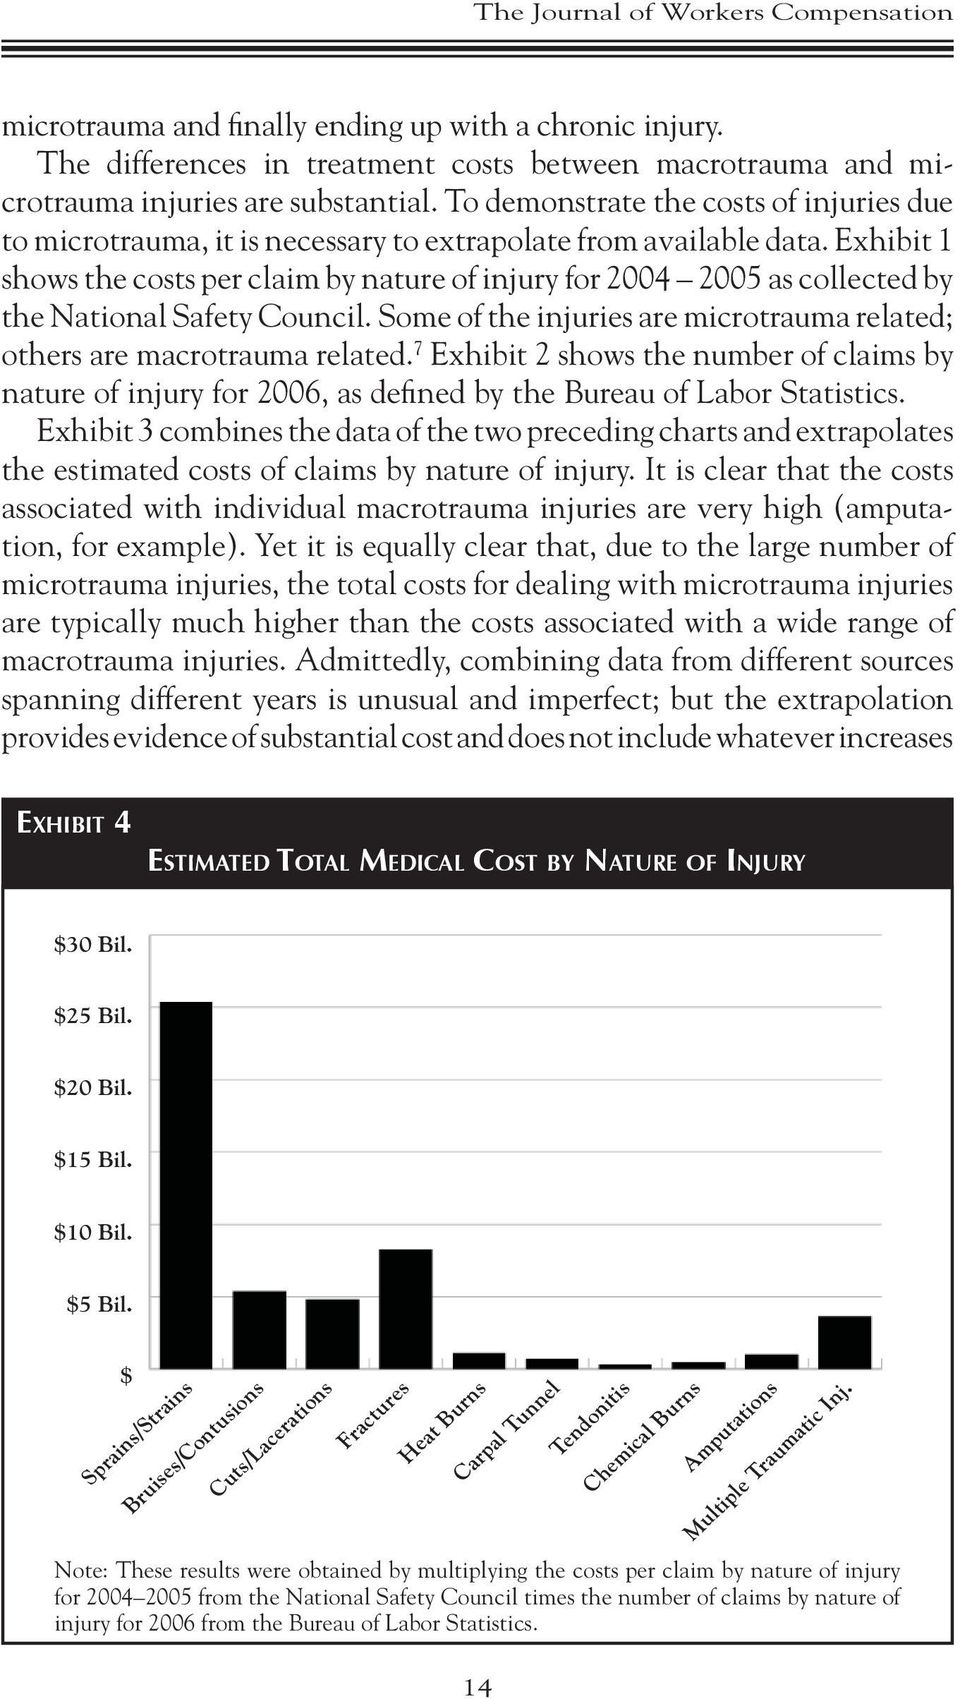 Exhibit 1 shows the costs per claim by nature of injury for 2004 2005 as collected by the National Safety Council. Some of the injuries are microtrauma related; others are macrotrauma related.